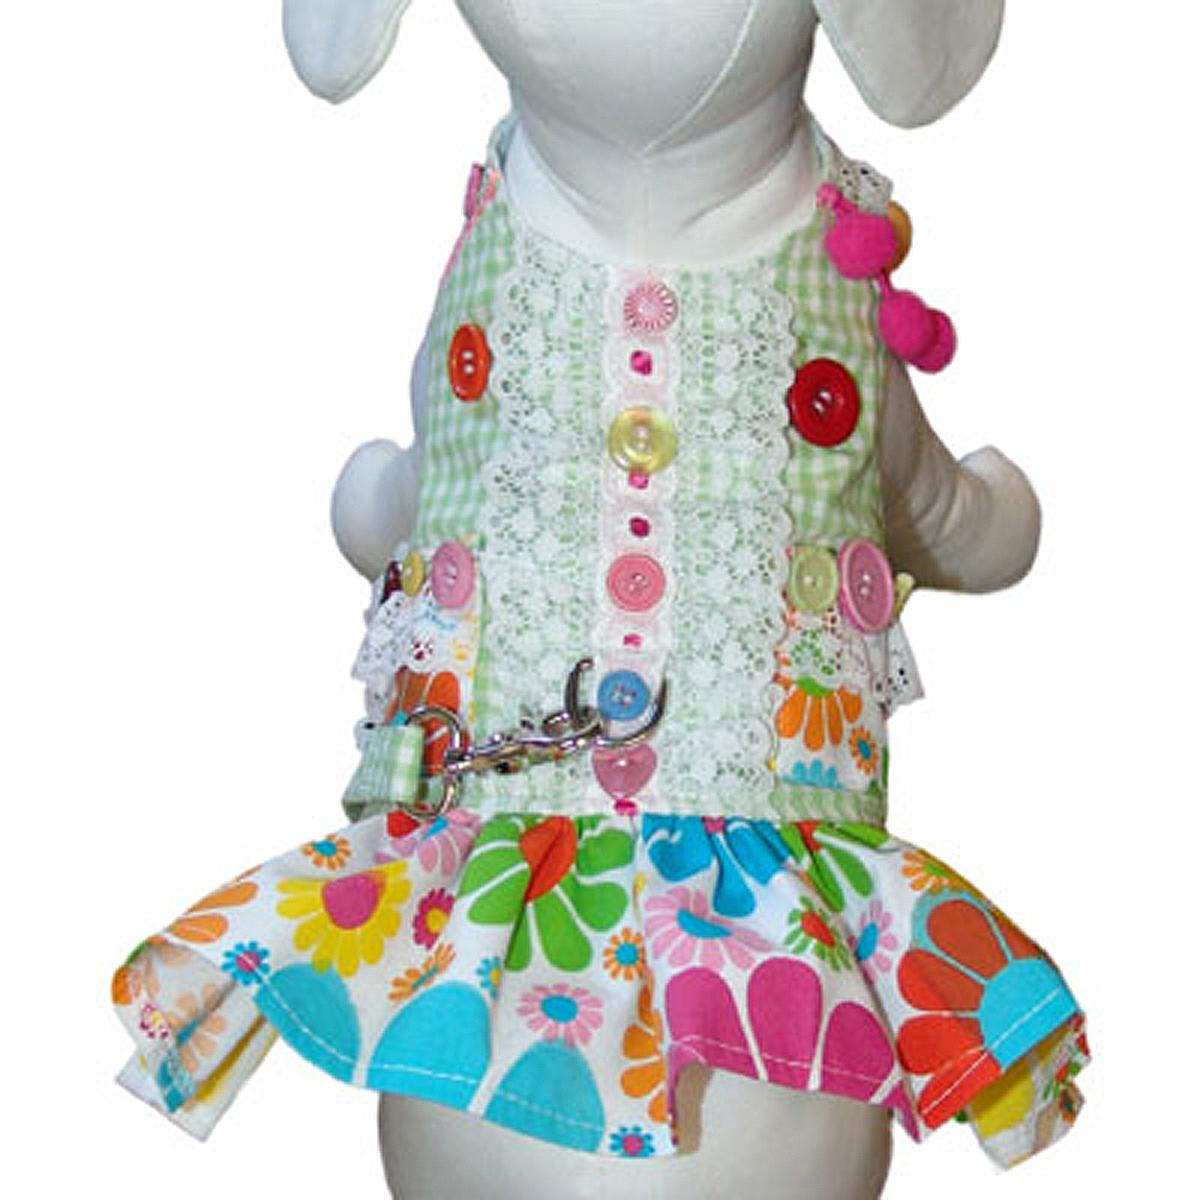 Darlin' Daisy Dog Harness Dress by Cha-Cha Couture - Green